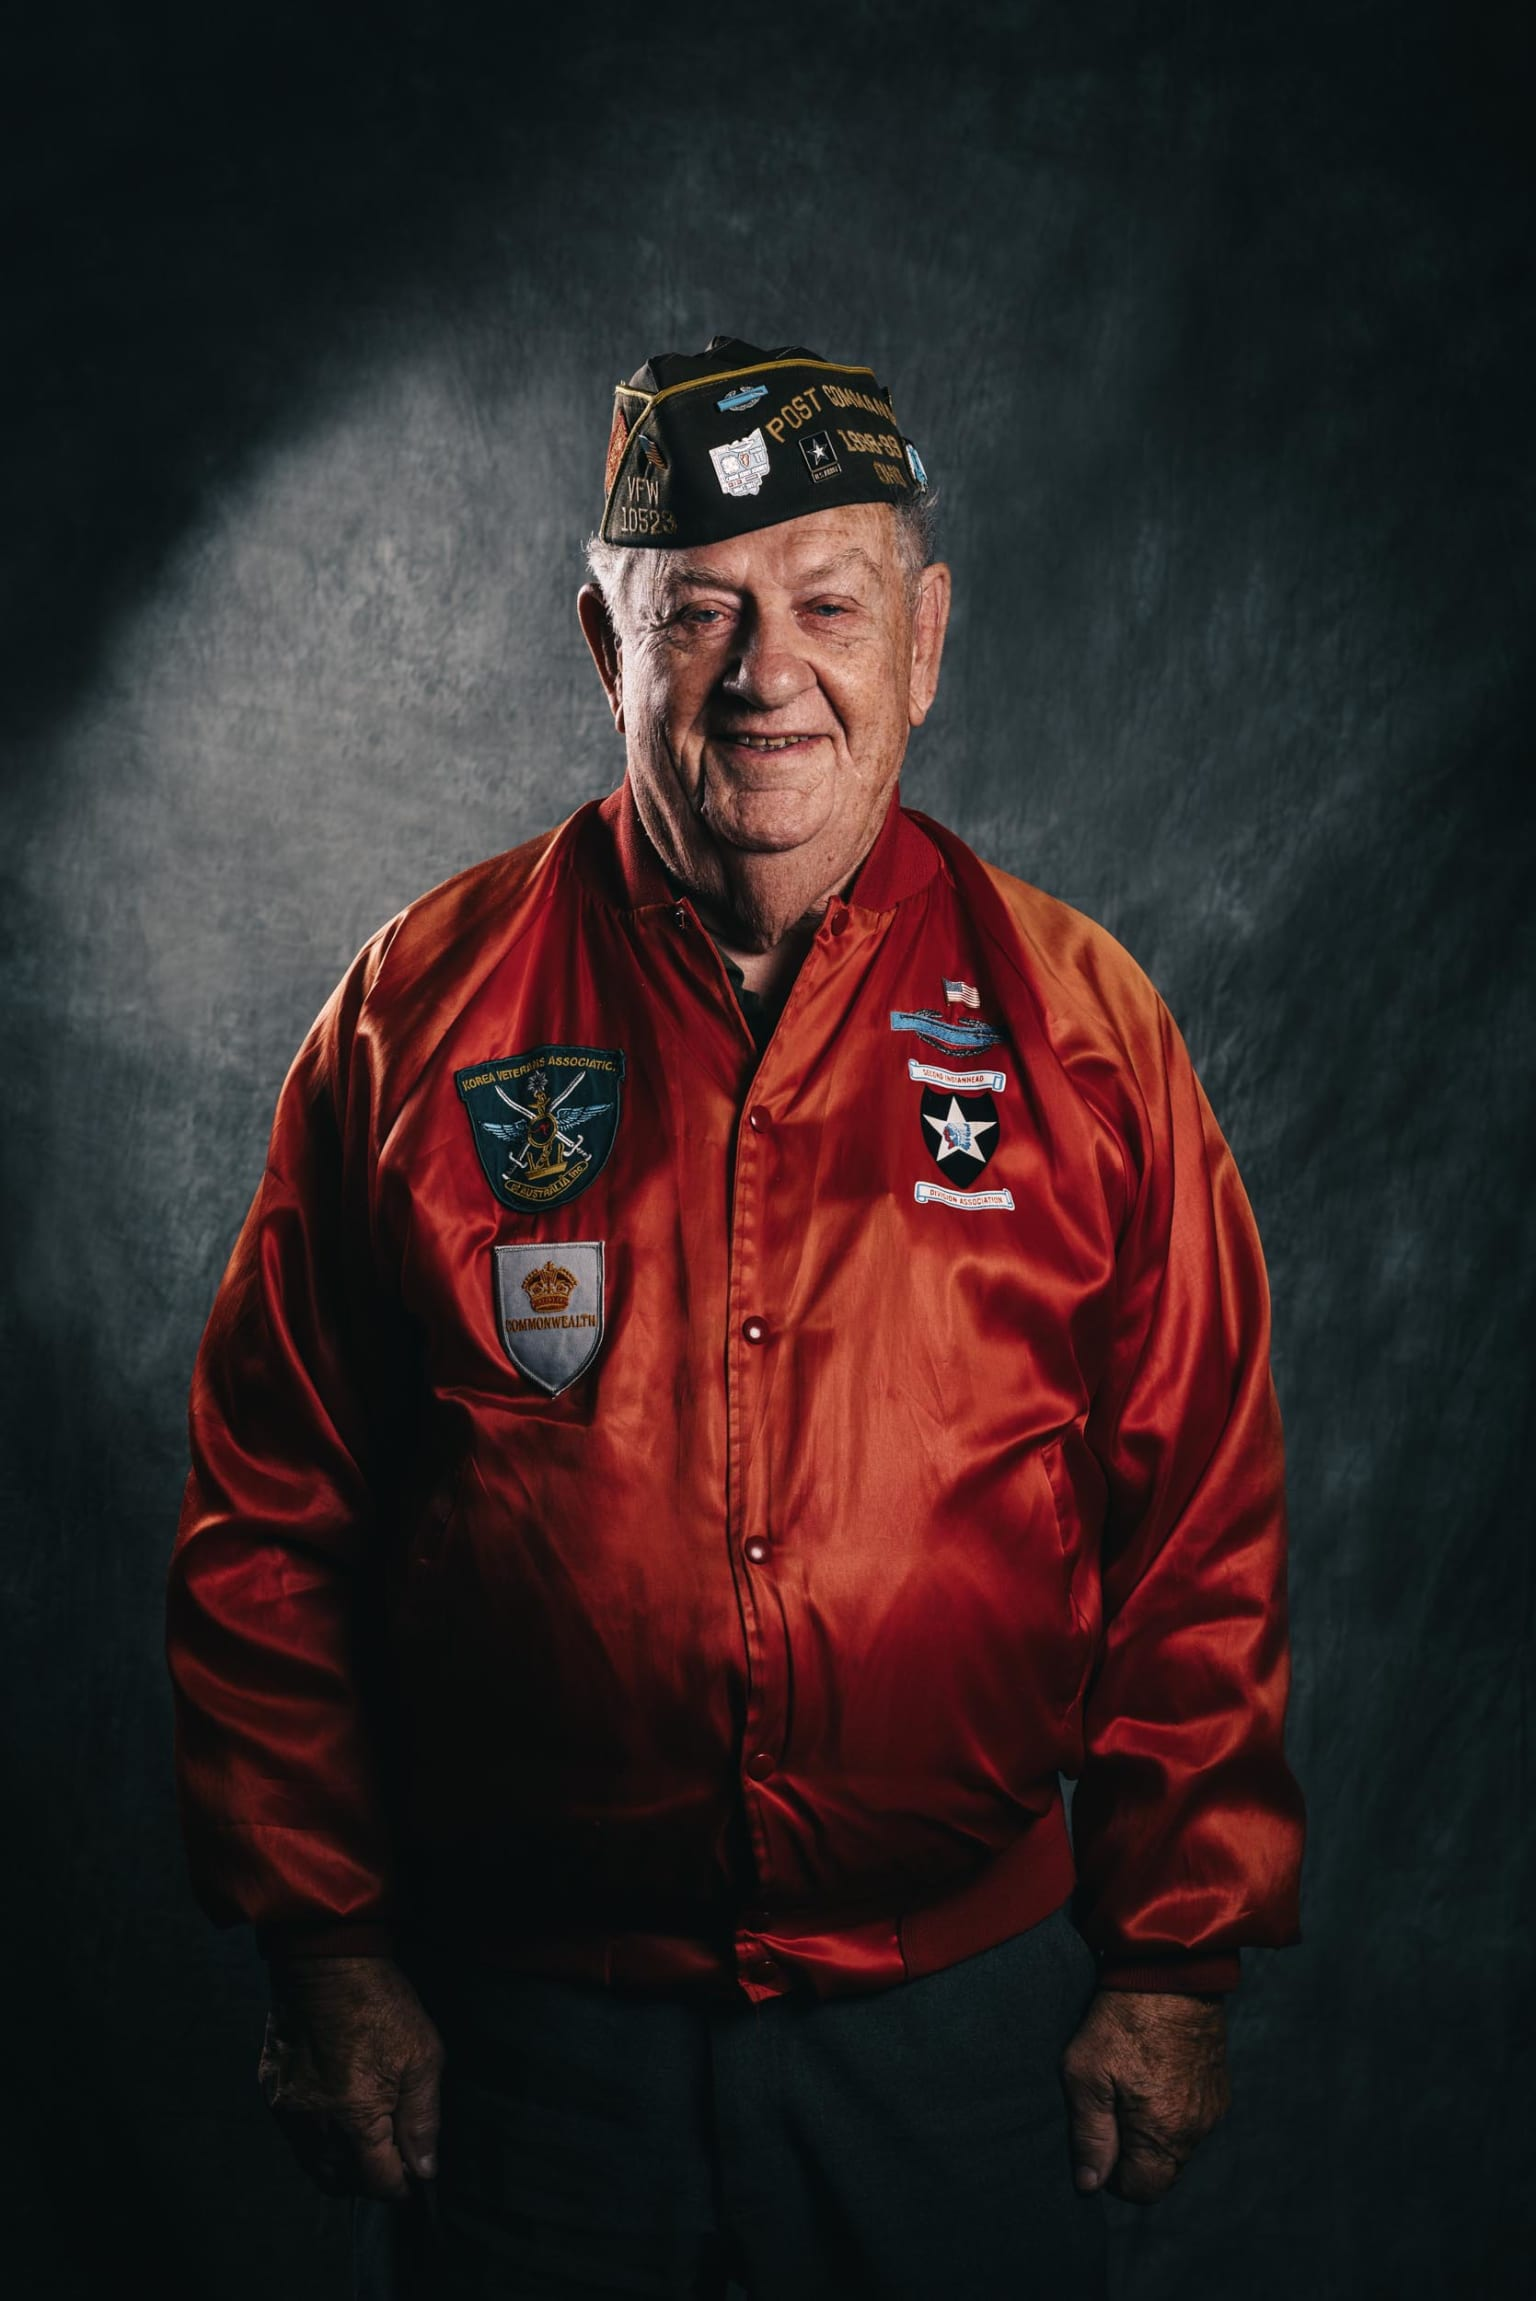 Our Heroes | A portrait series